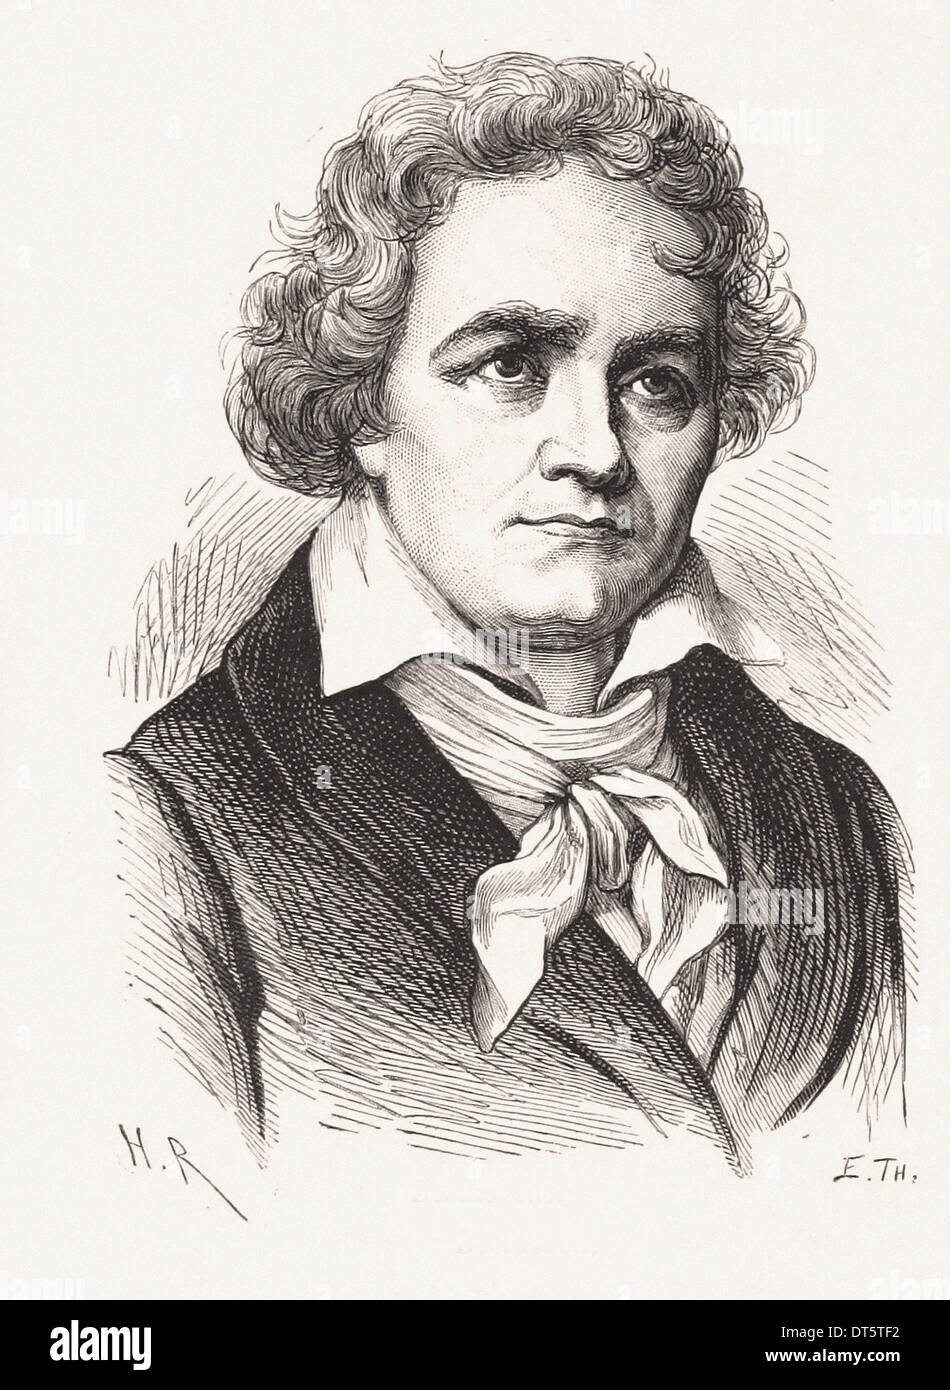 Portrait of Ludwig van Beethoven - French engraving XIX th century - Stock Image